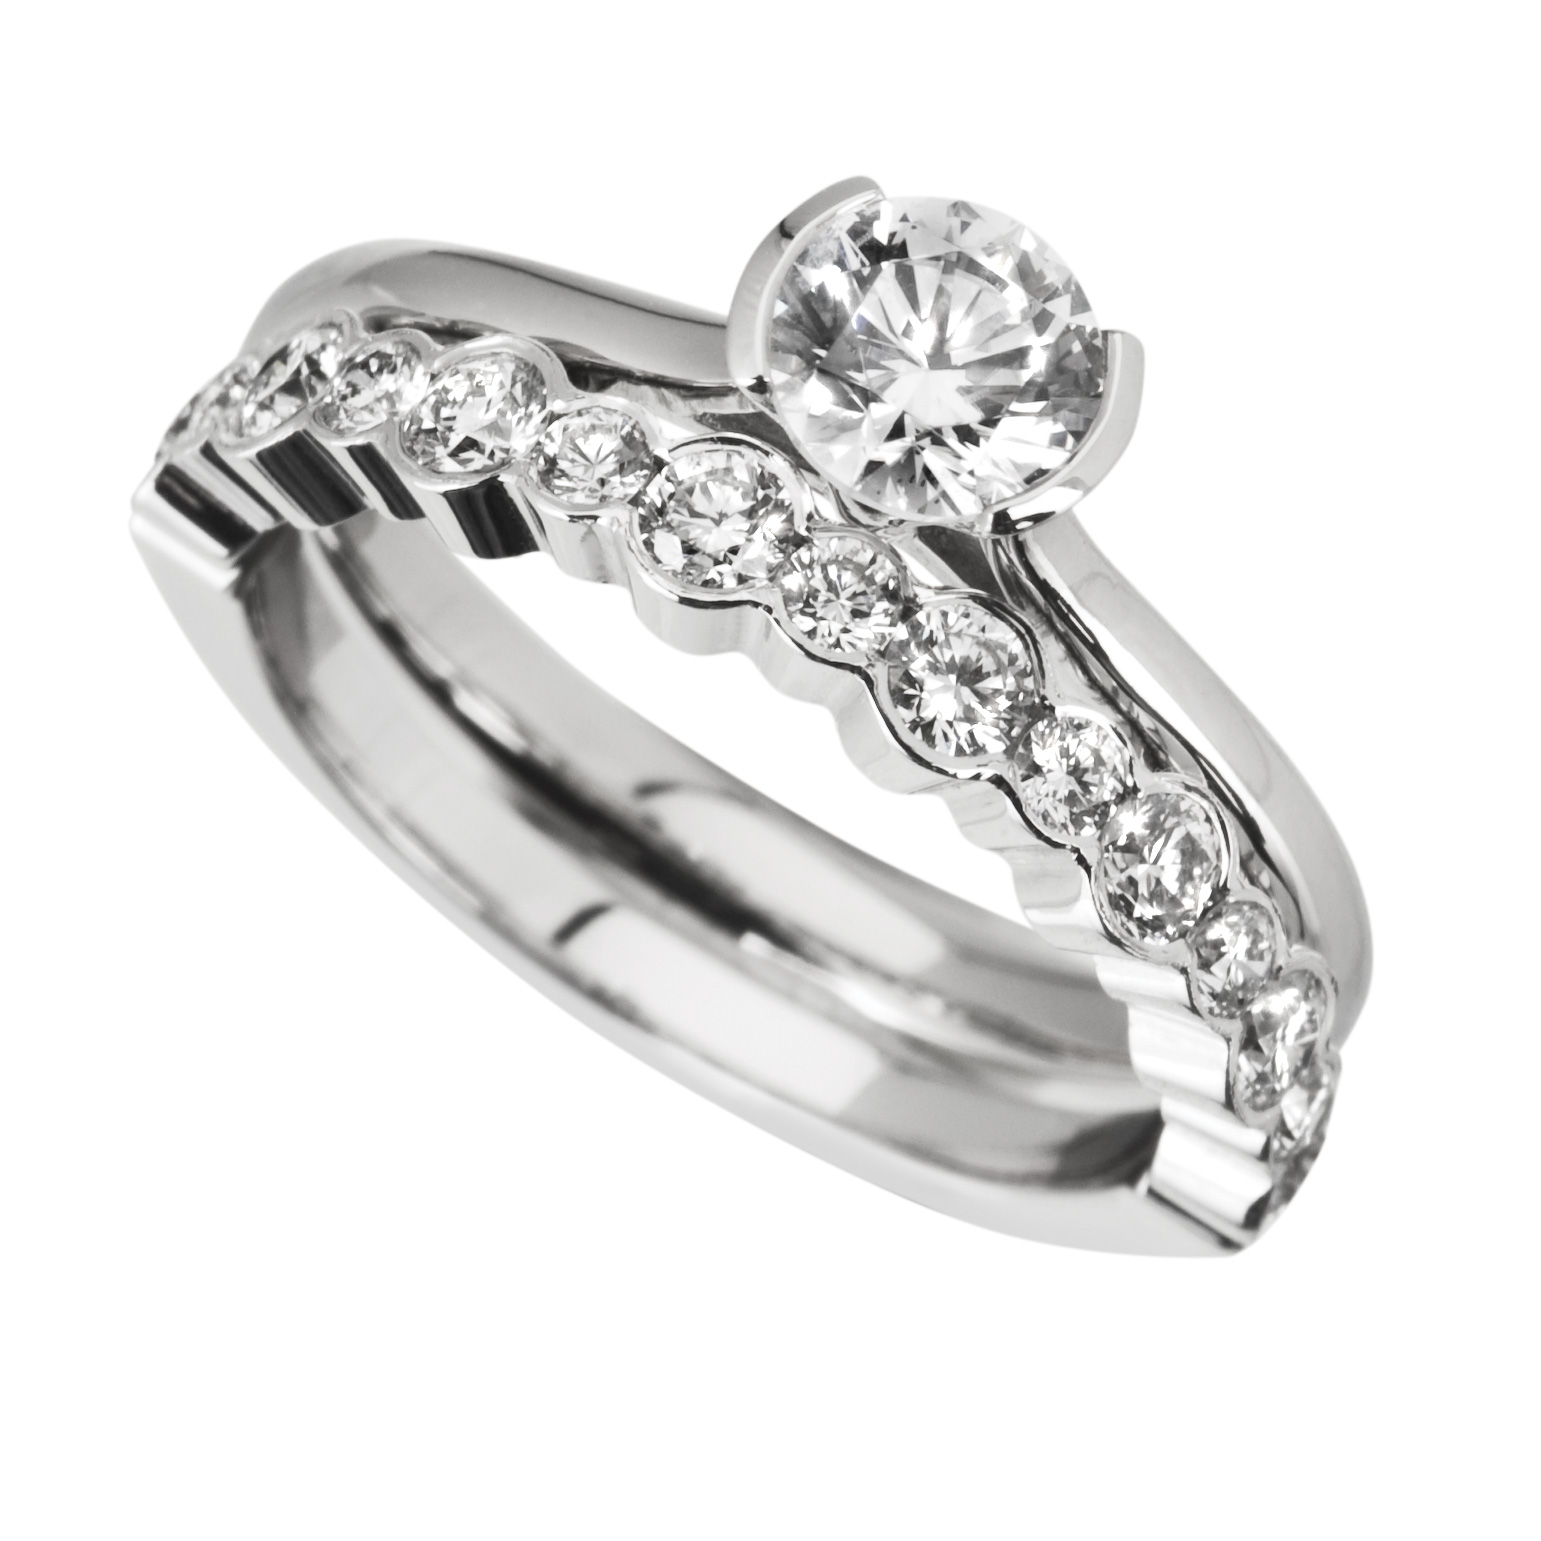 Wedding Engagement Rings Full Size Of Bands Band And